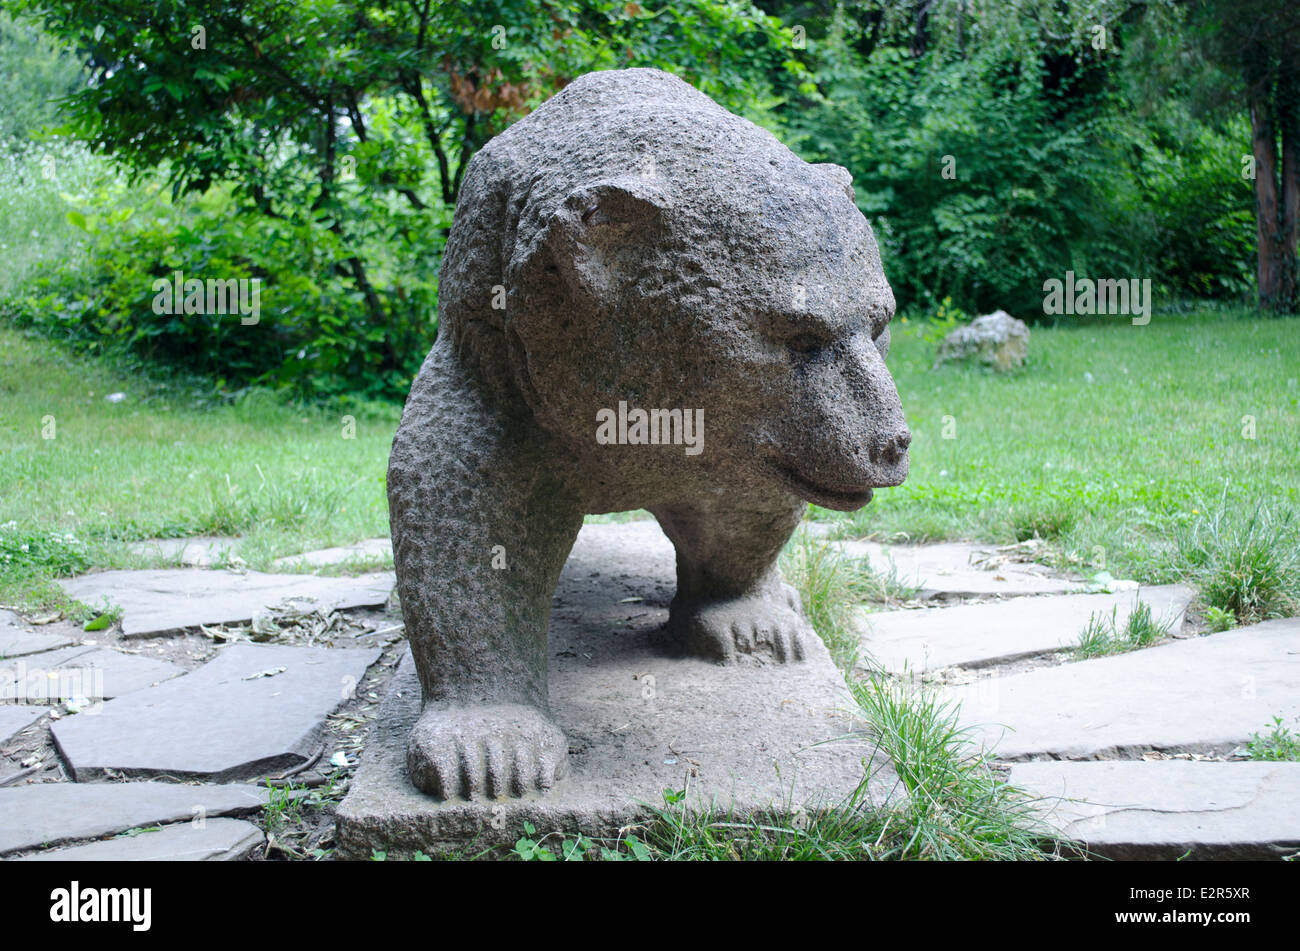 Granite sculpture in the form of a bear in Rousse Bulgaria - Stock Image